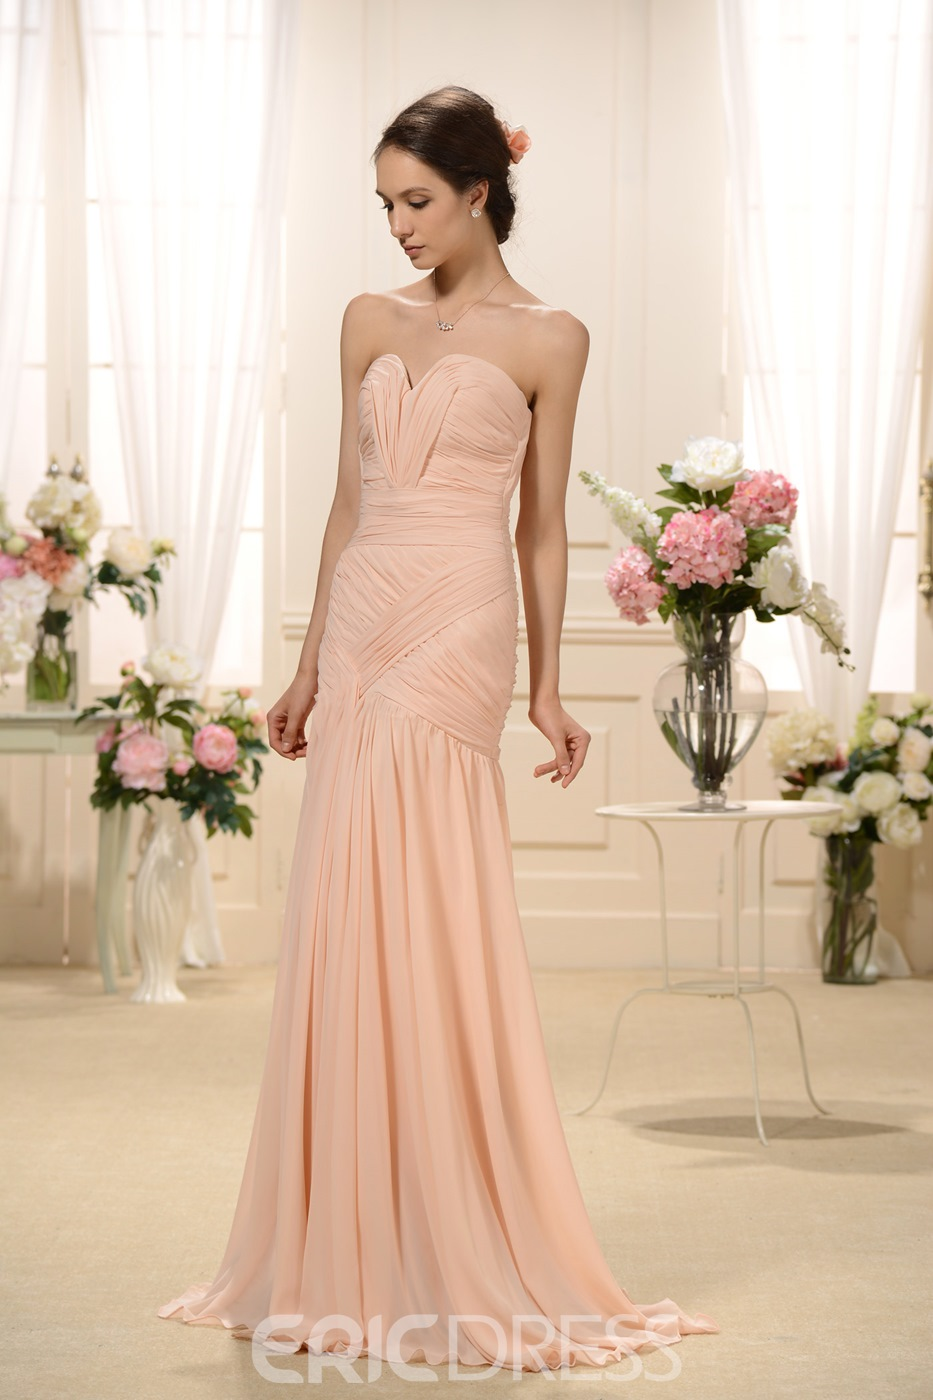 Classy Pleats Split-front Trumpet/Mermaid Sweetheart Neckline Floor-Length Bridesmaid Dress